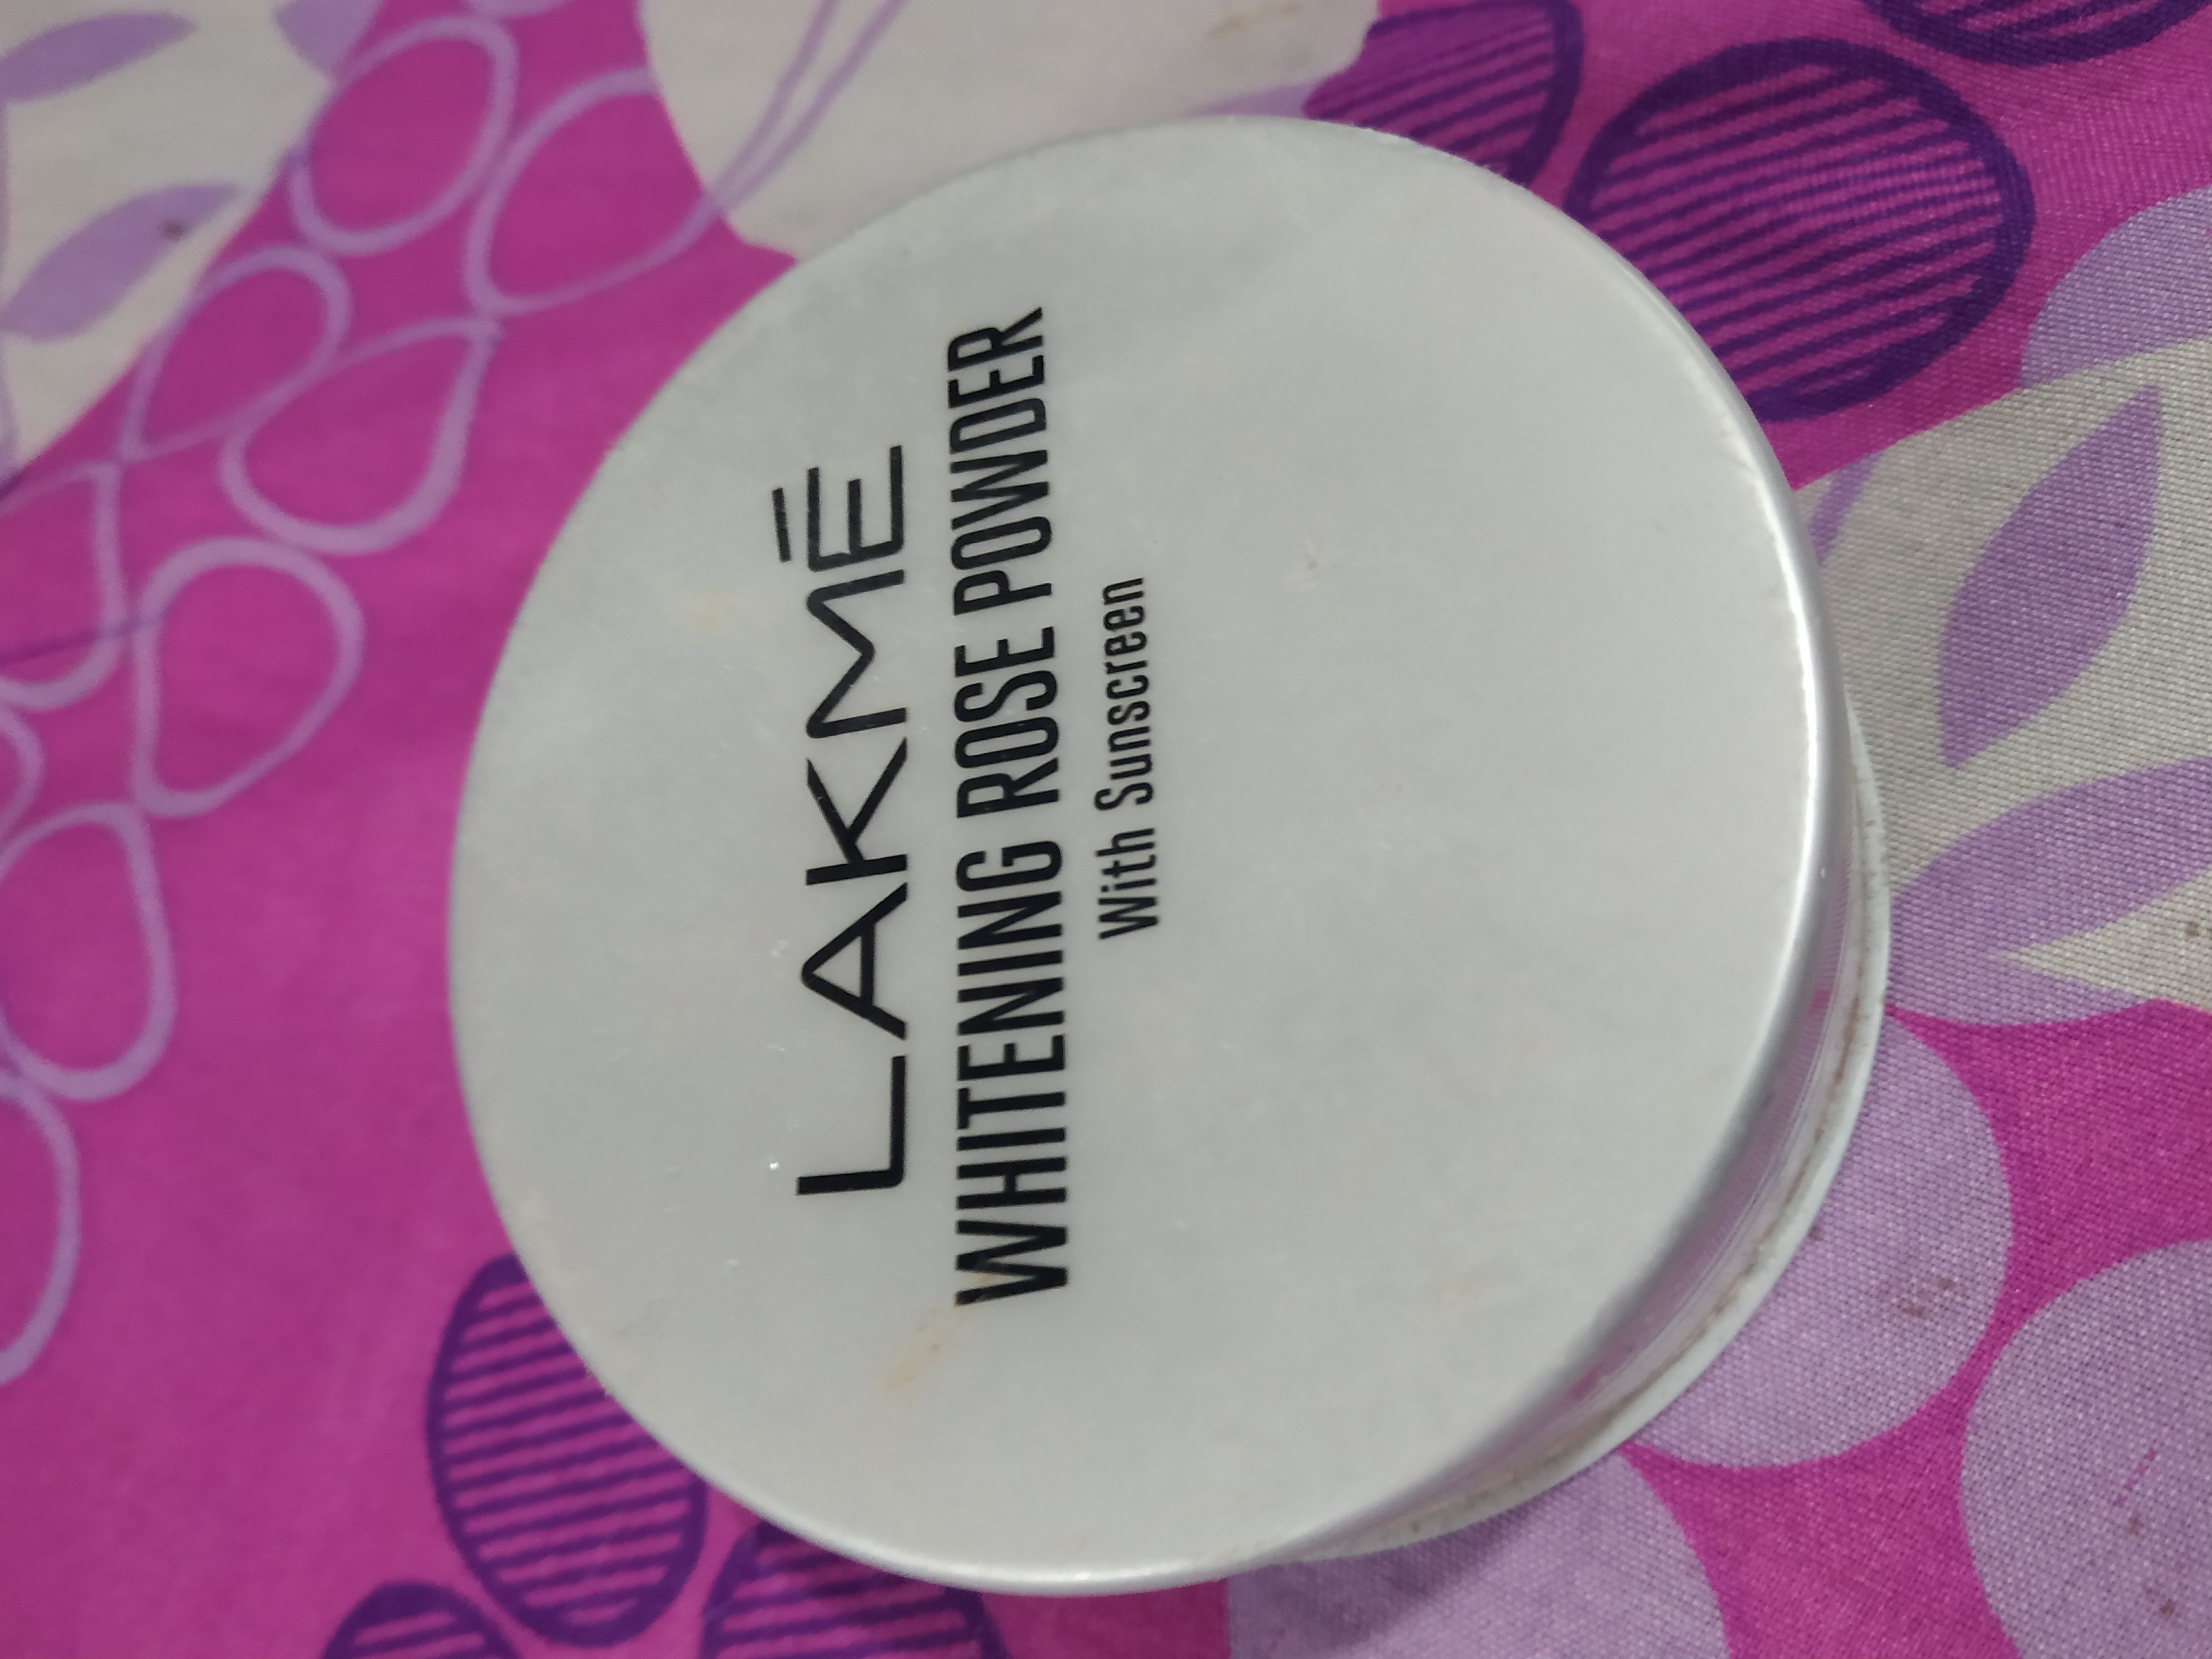 Lakme Whitening Rose Powder With Sunscreen-Satisfying product-By nilofer